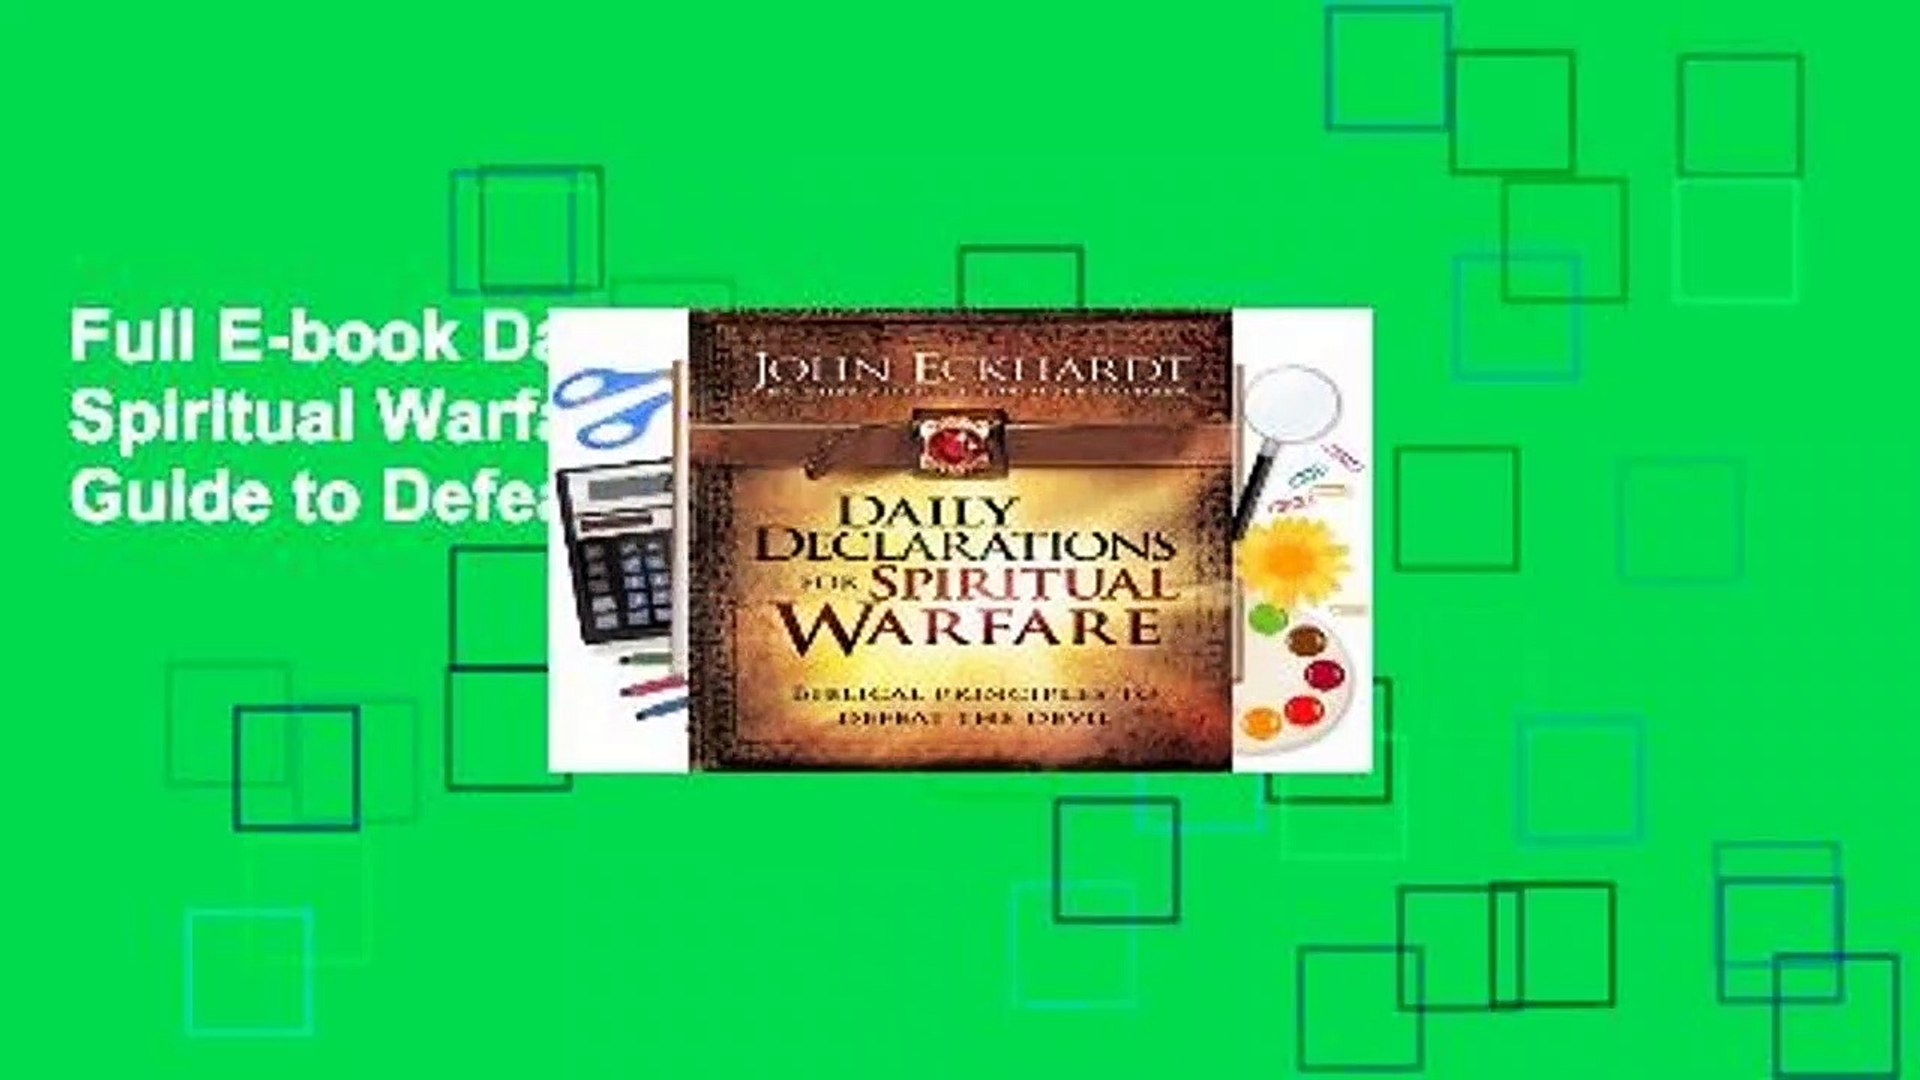 Full E-book Daily Declarations for Spiritual Warfare: A Biblically Based Guide to Defeat the Devil